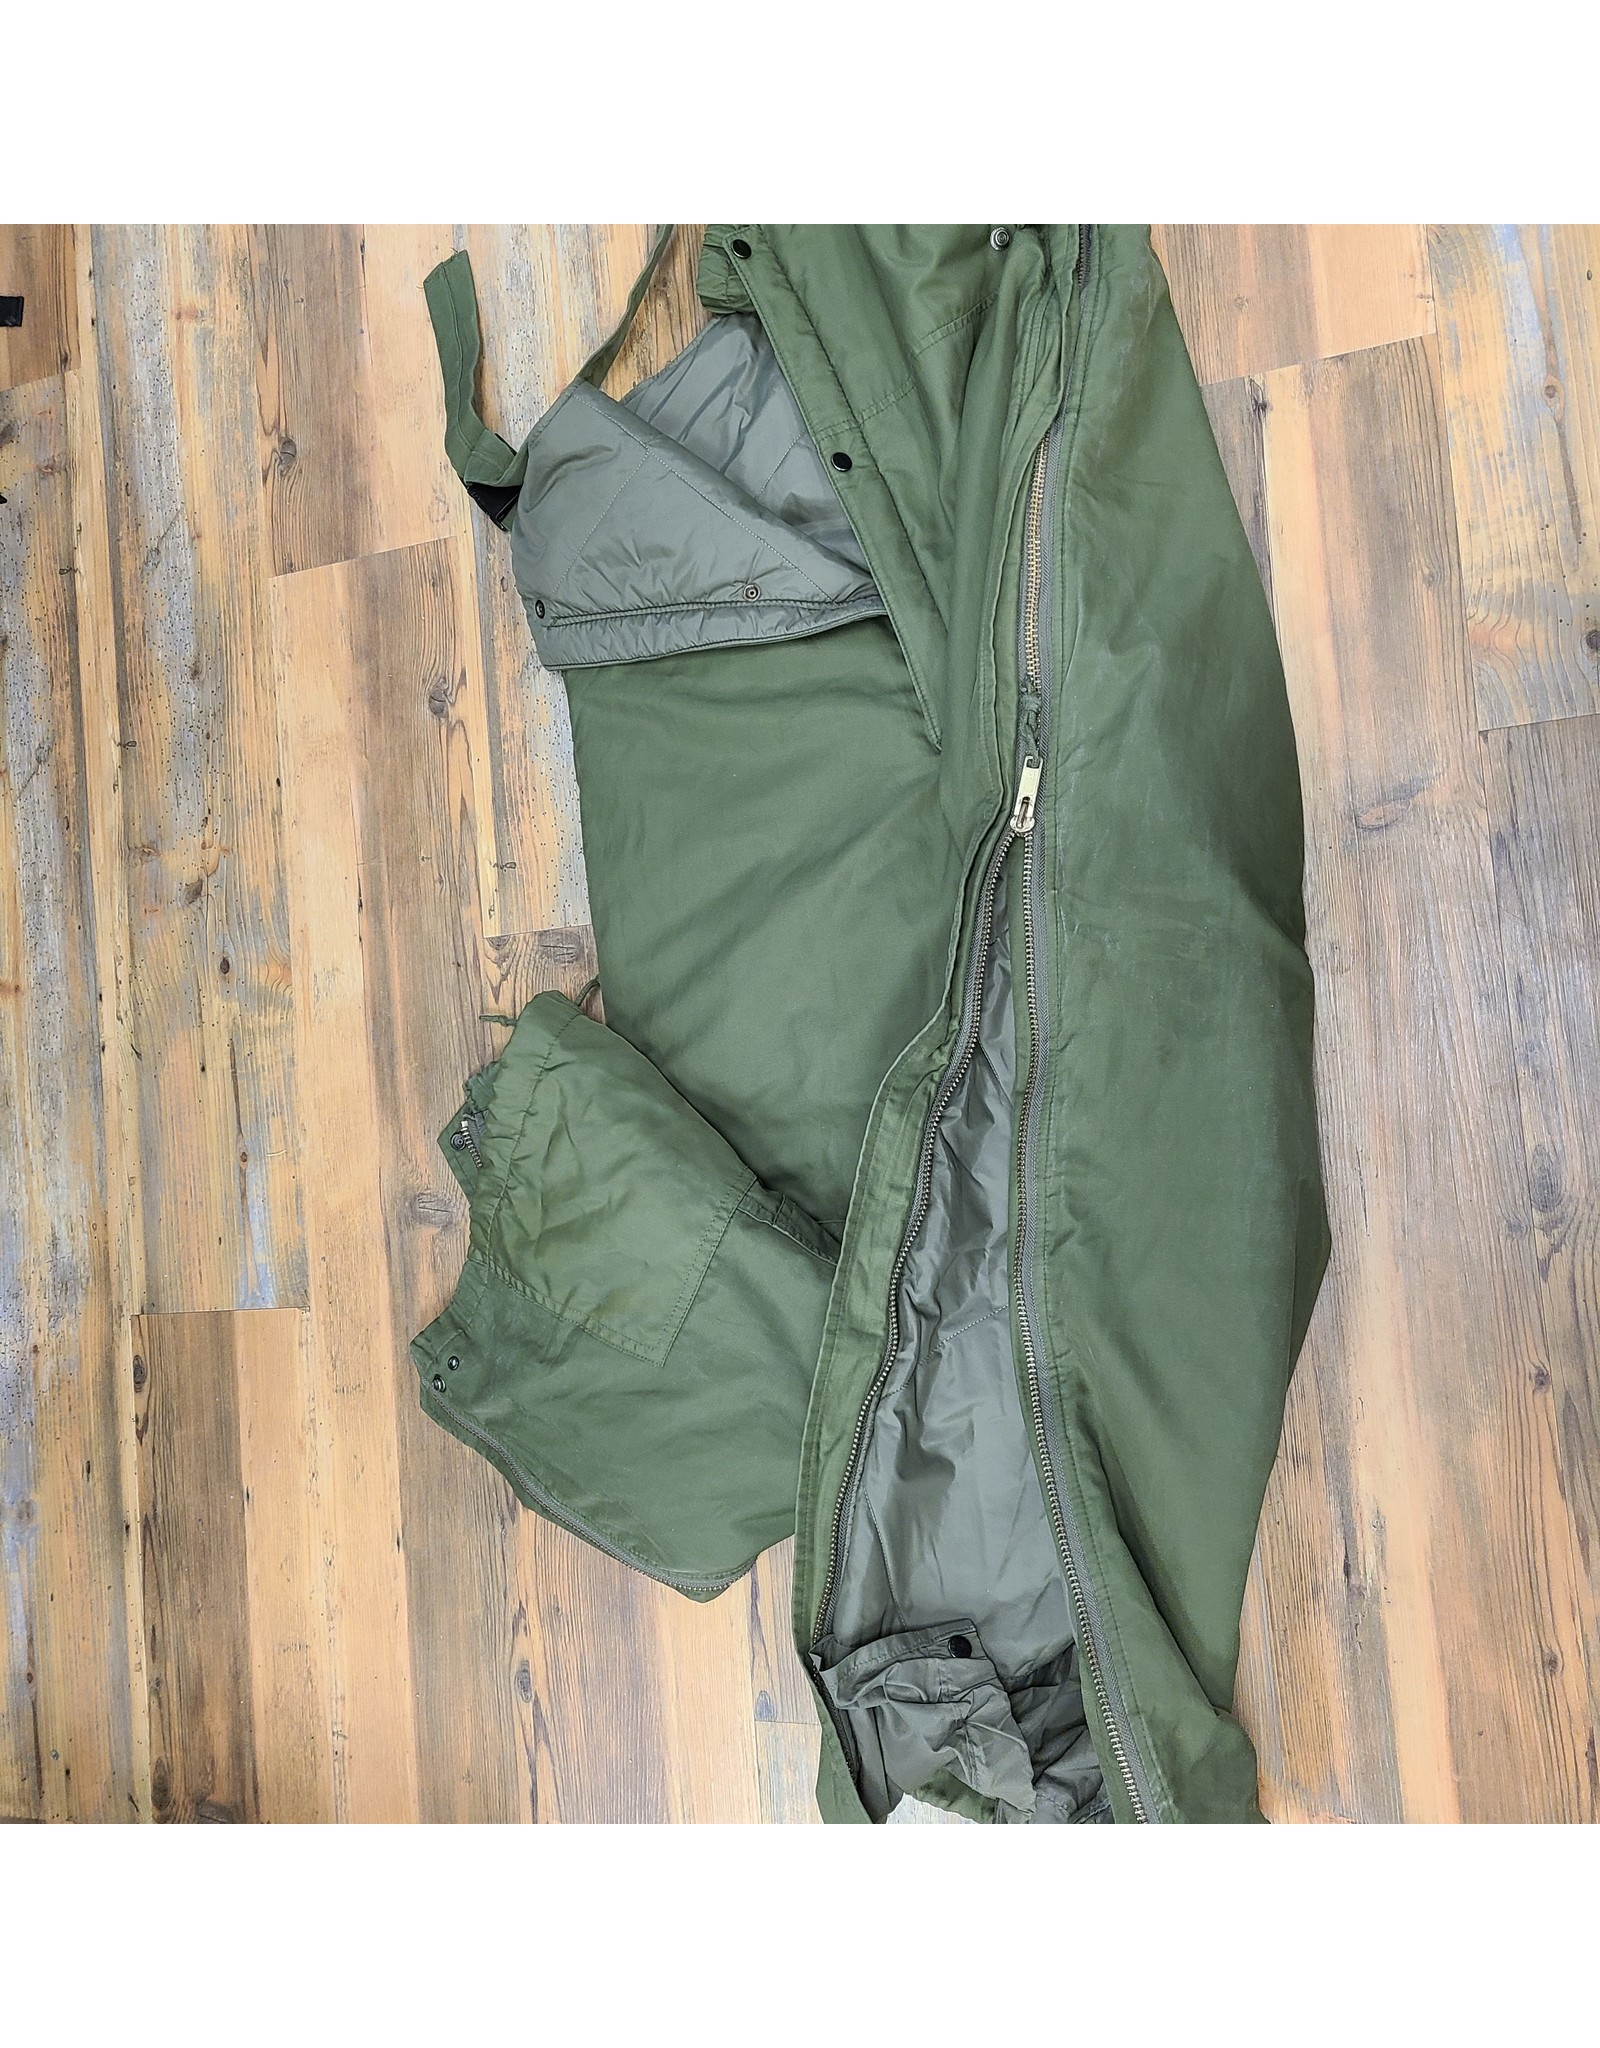 CANADIAN SURPLUS INSULATED ARMY BIB OLIVE PANT 7334